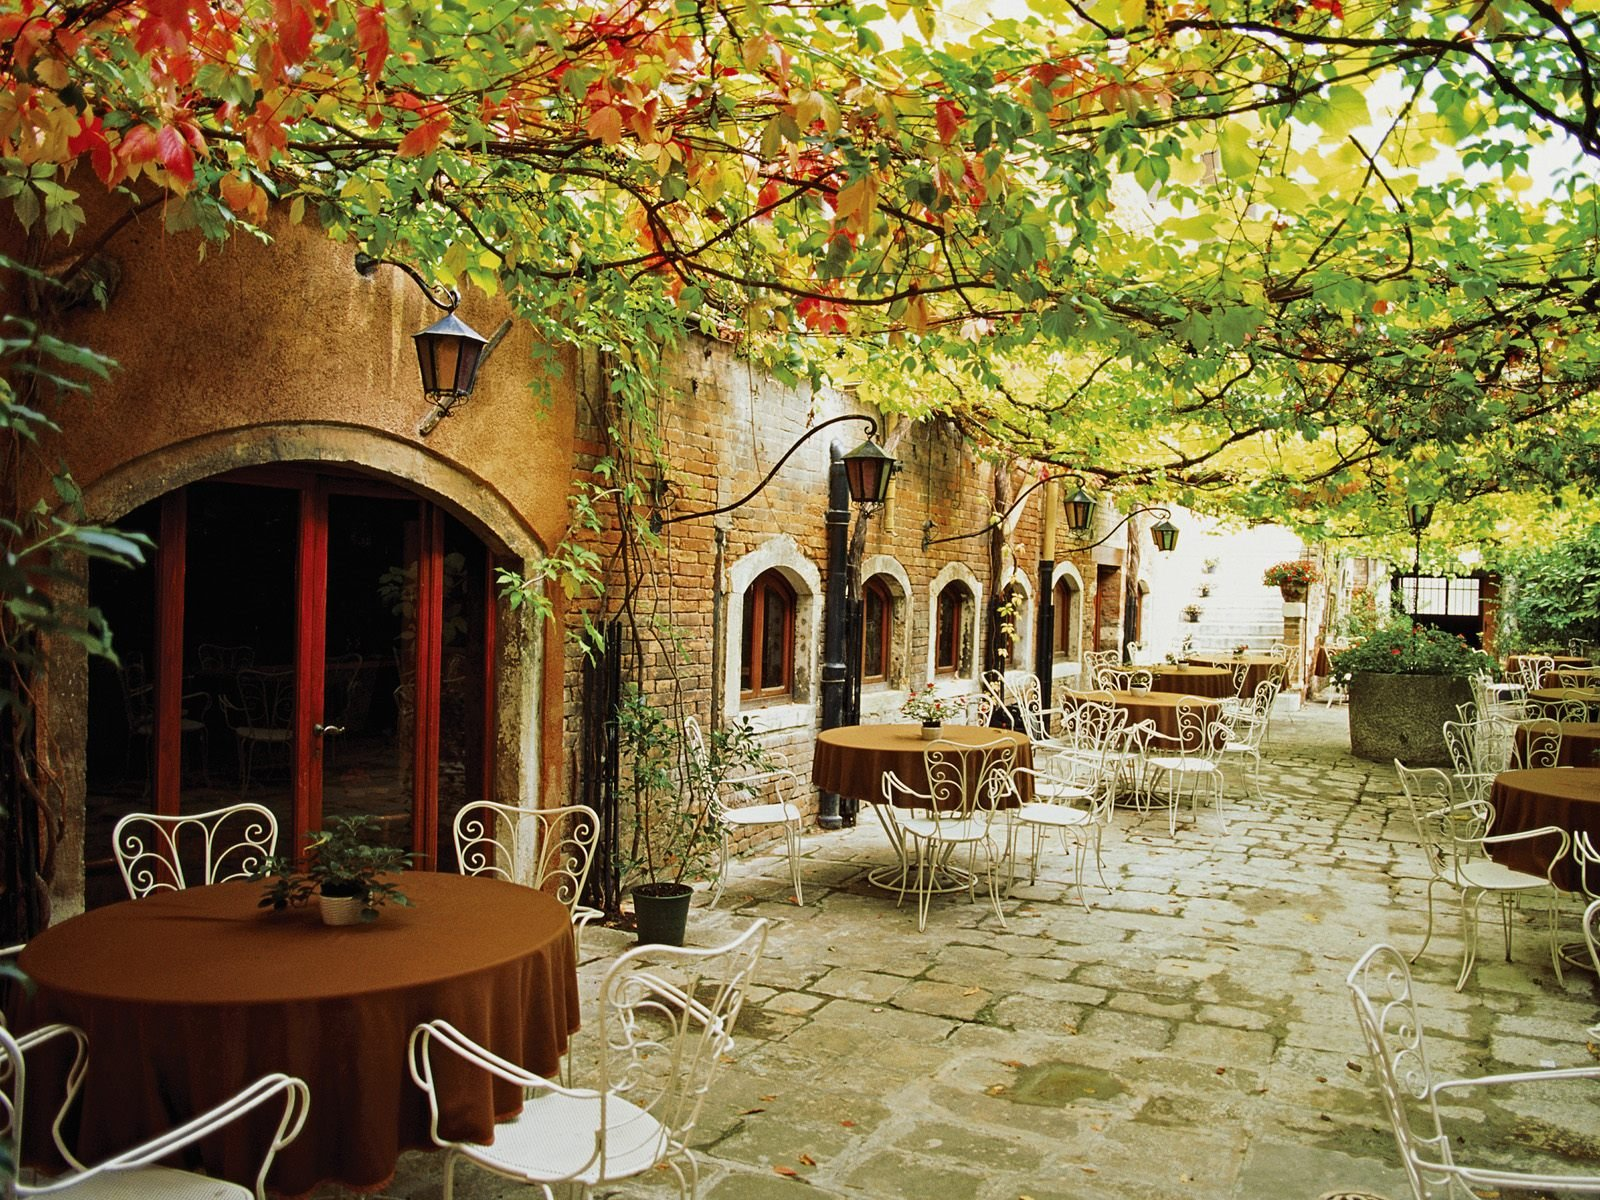 Dining Alfresco Venice Italy Wallpapers HD Wallpapers 1600x1200